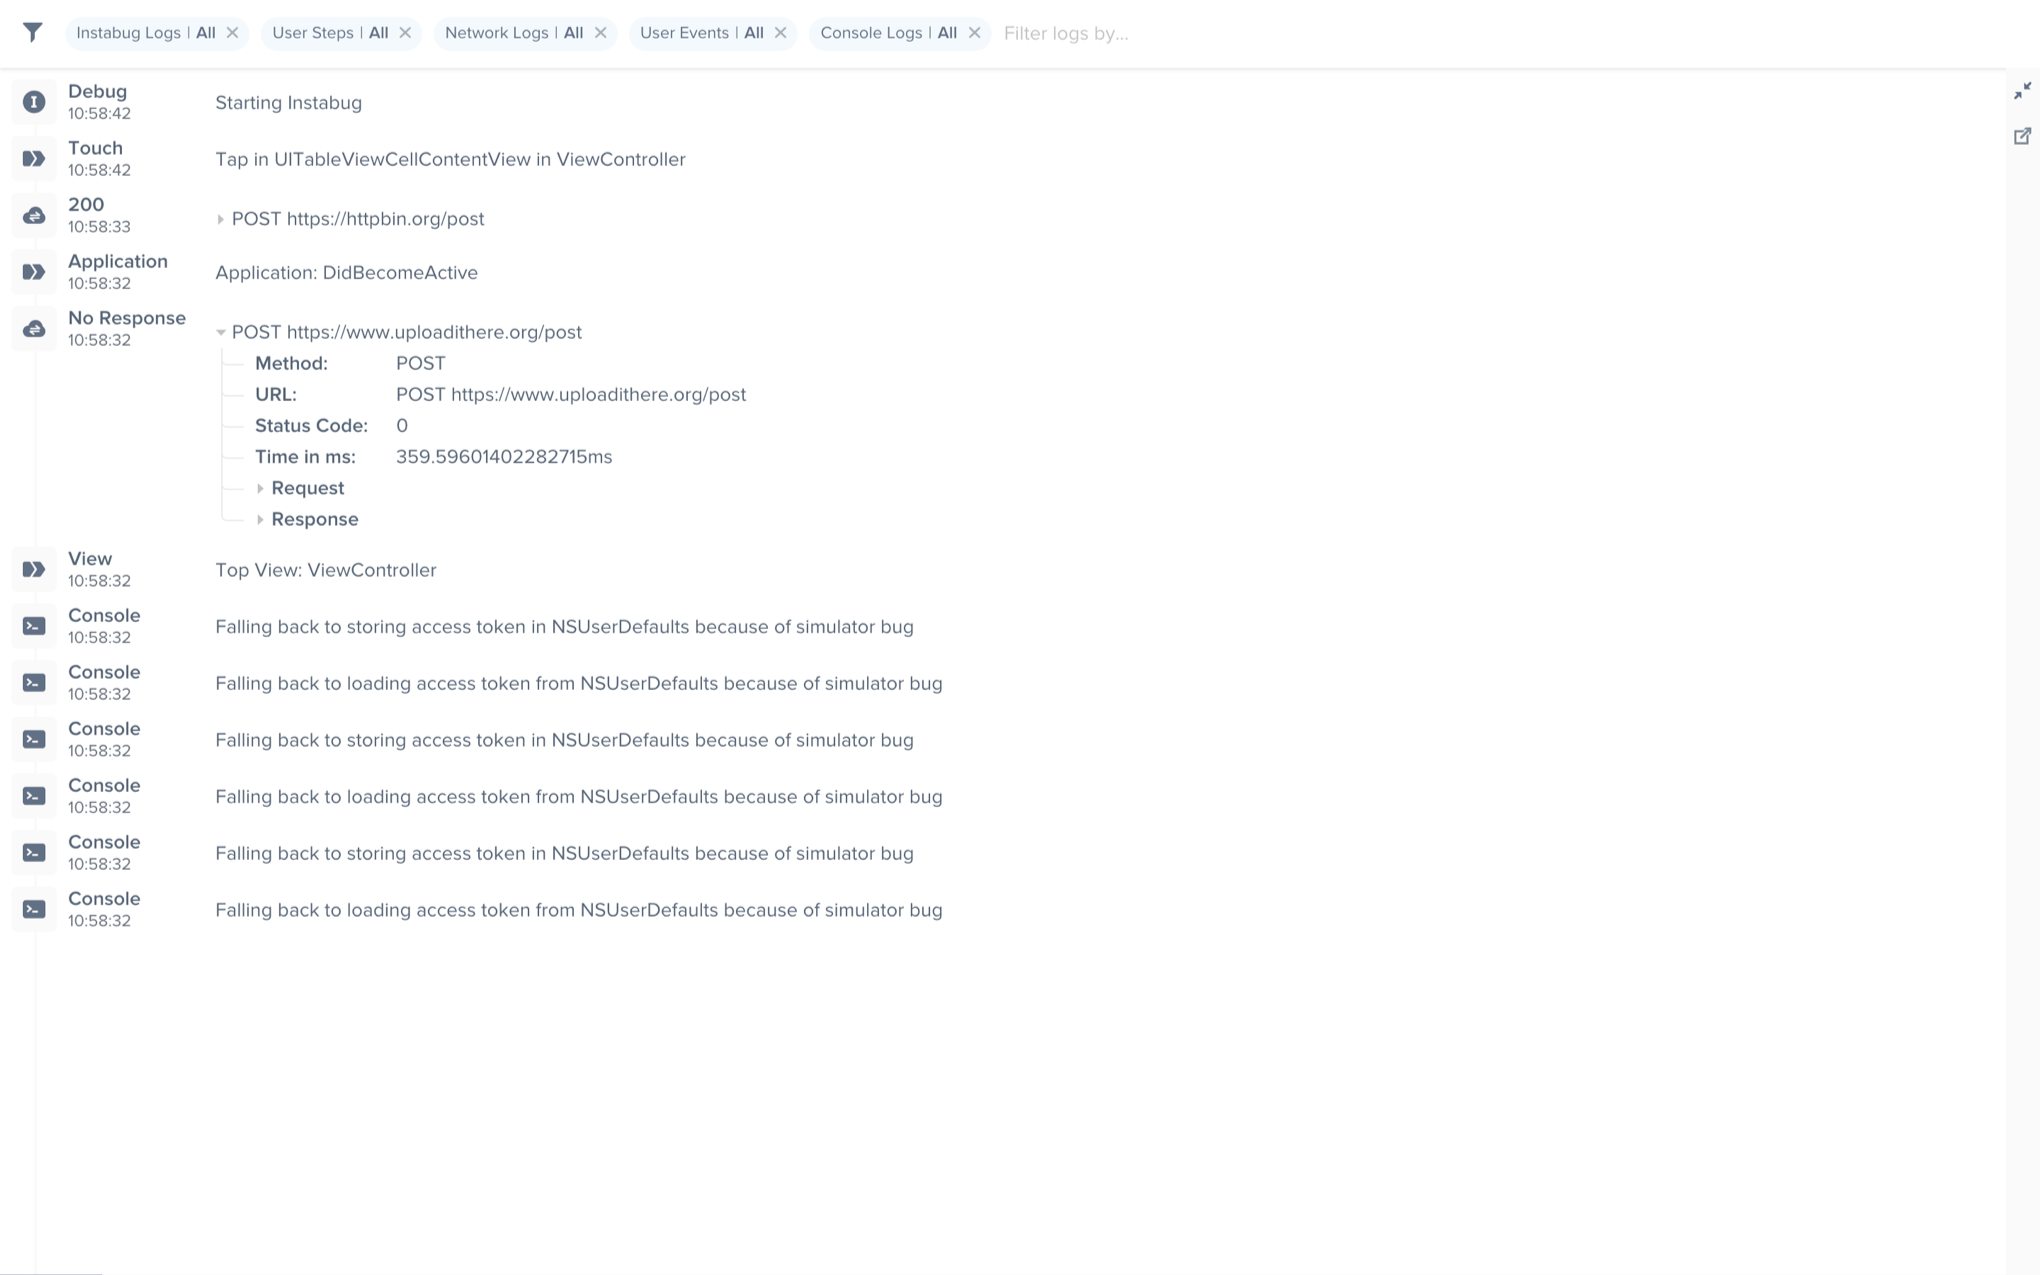 An example of the expanded logs view from your dashboard.